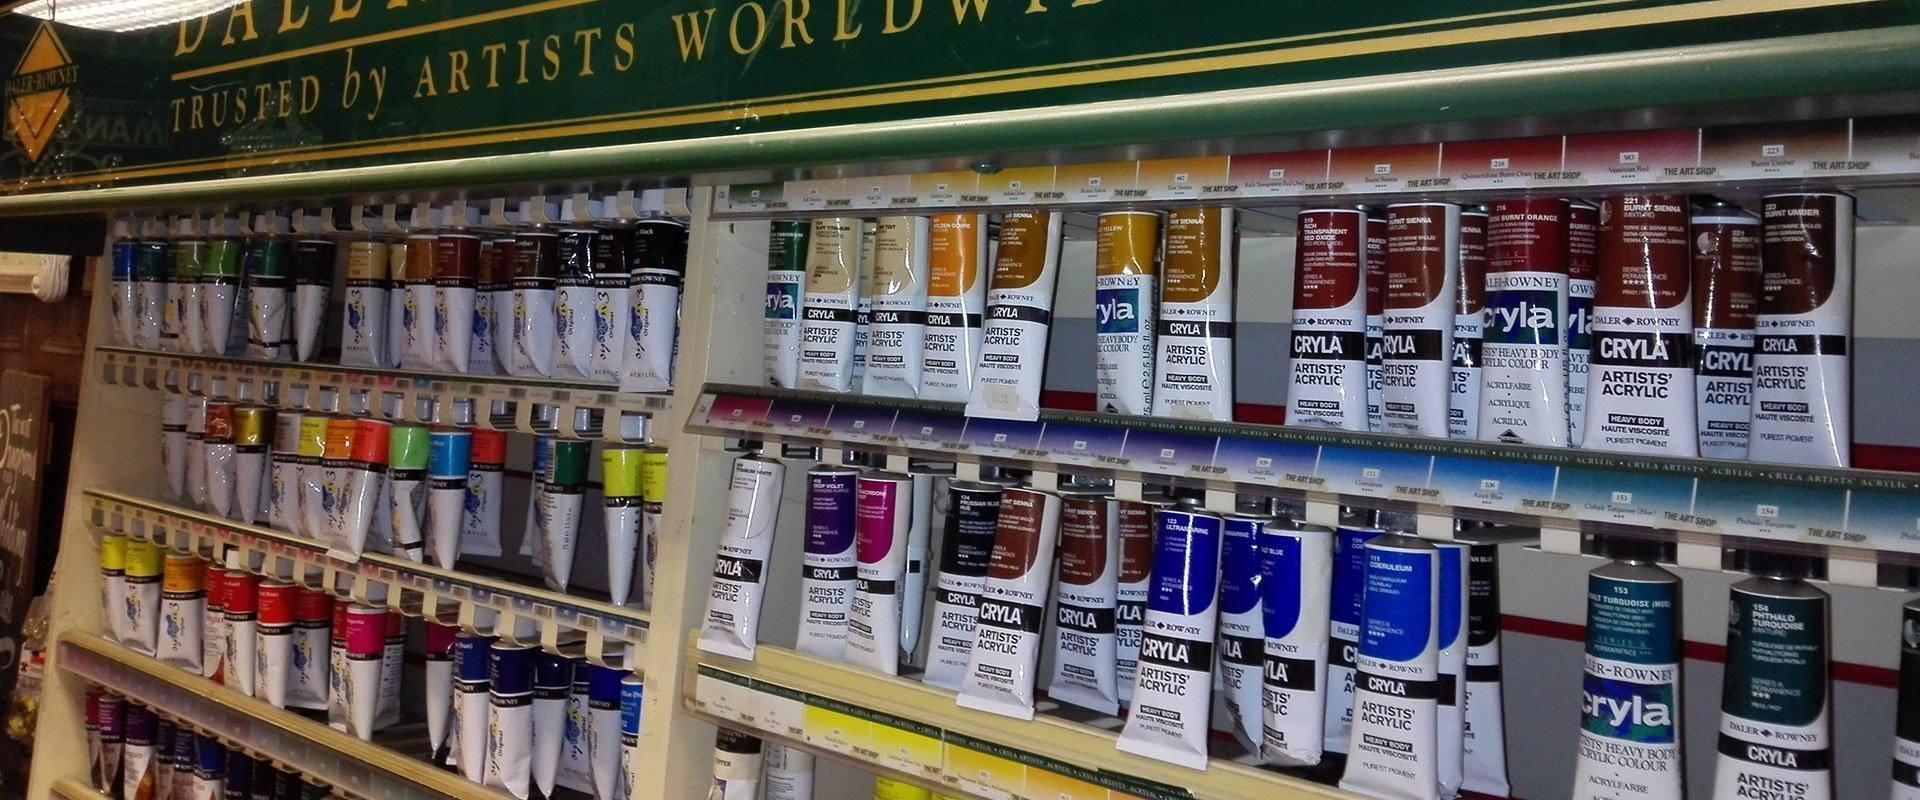 326ed02365c3 Arts and crafts supplies in Wanstead and South Woodford